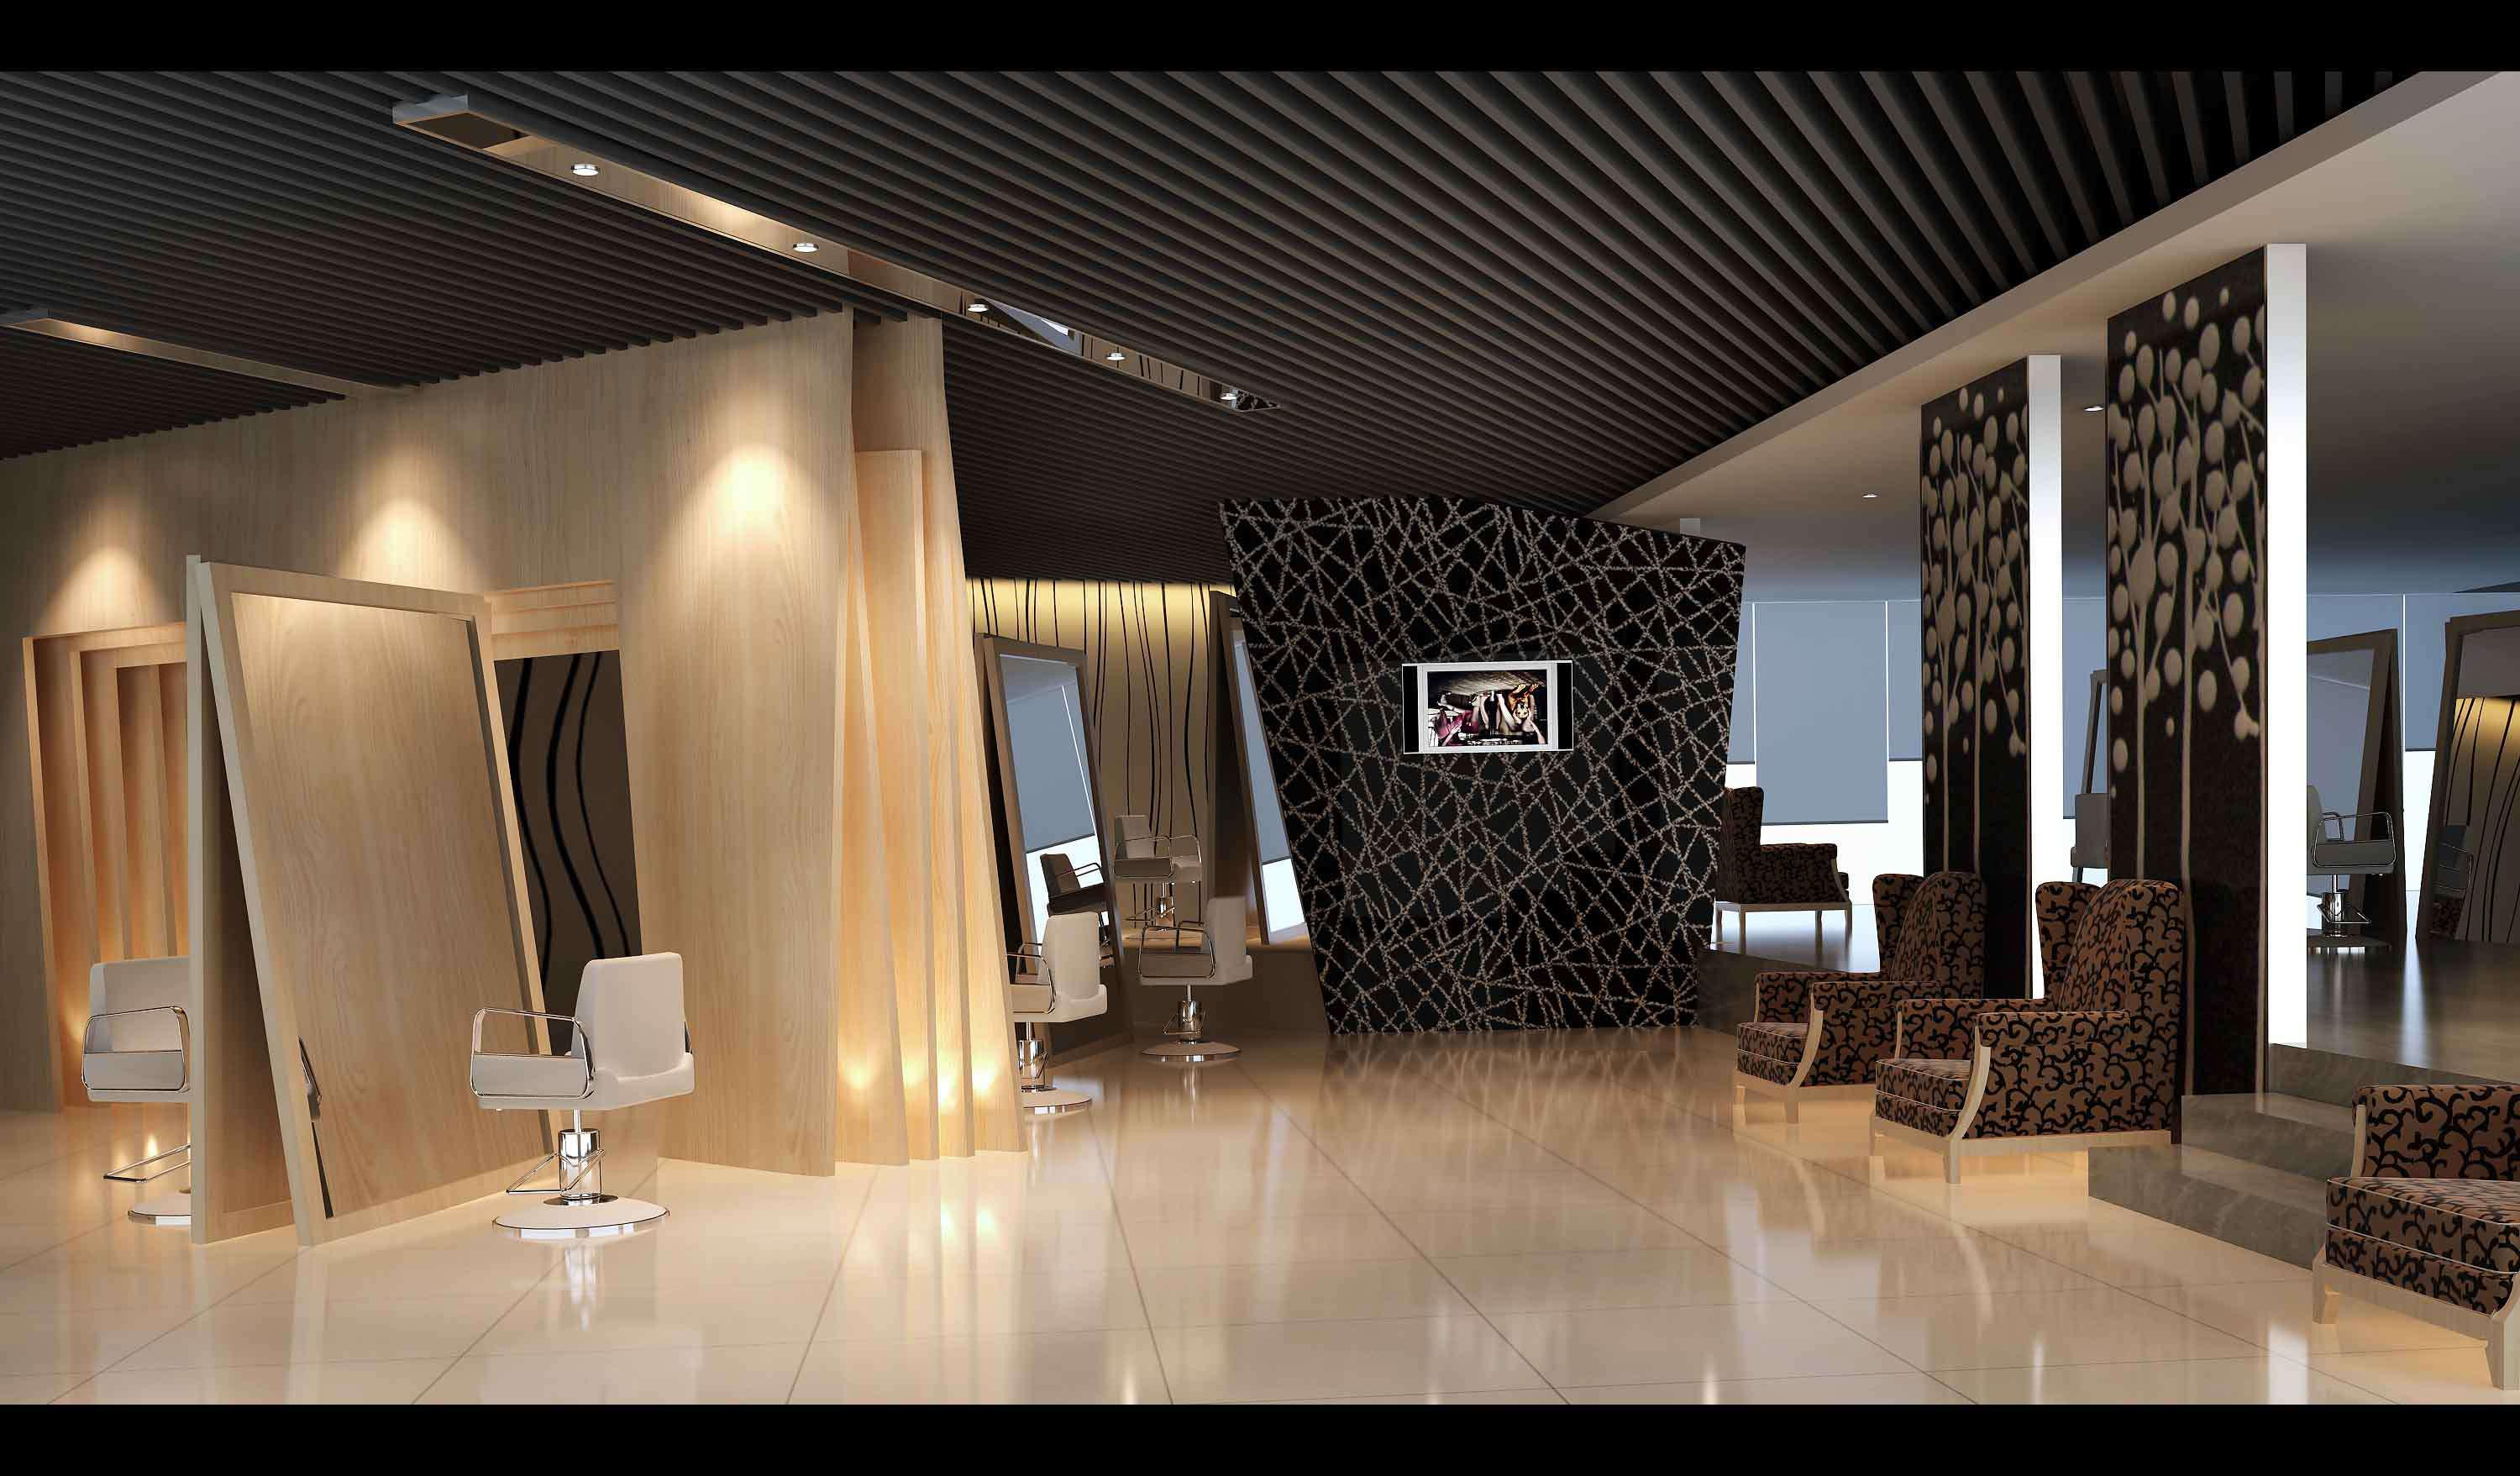 Luxurious salon interior 3d model max for 3d beauty salon games